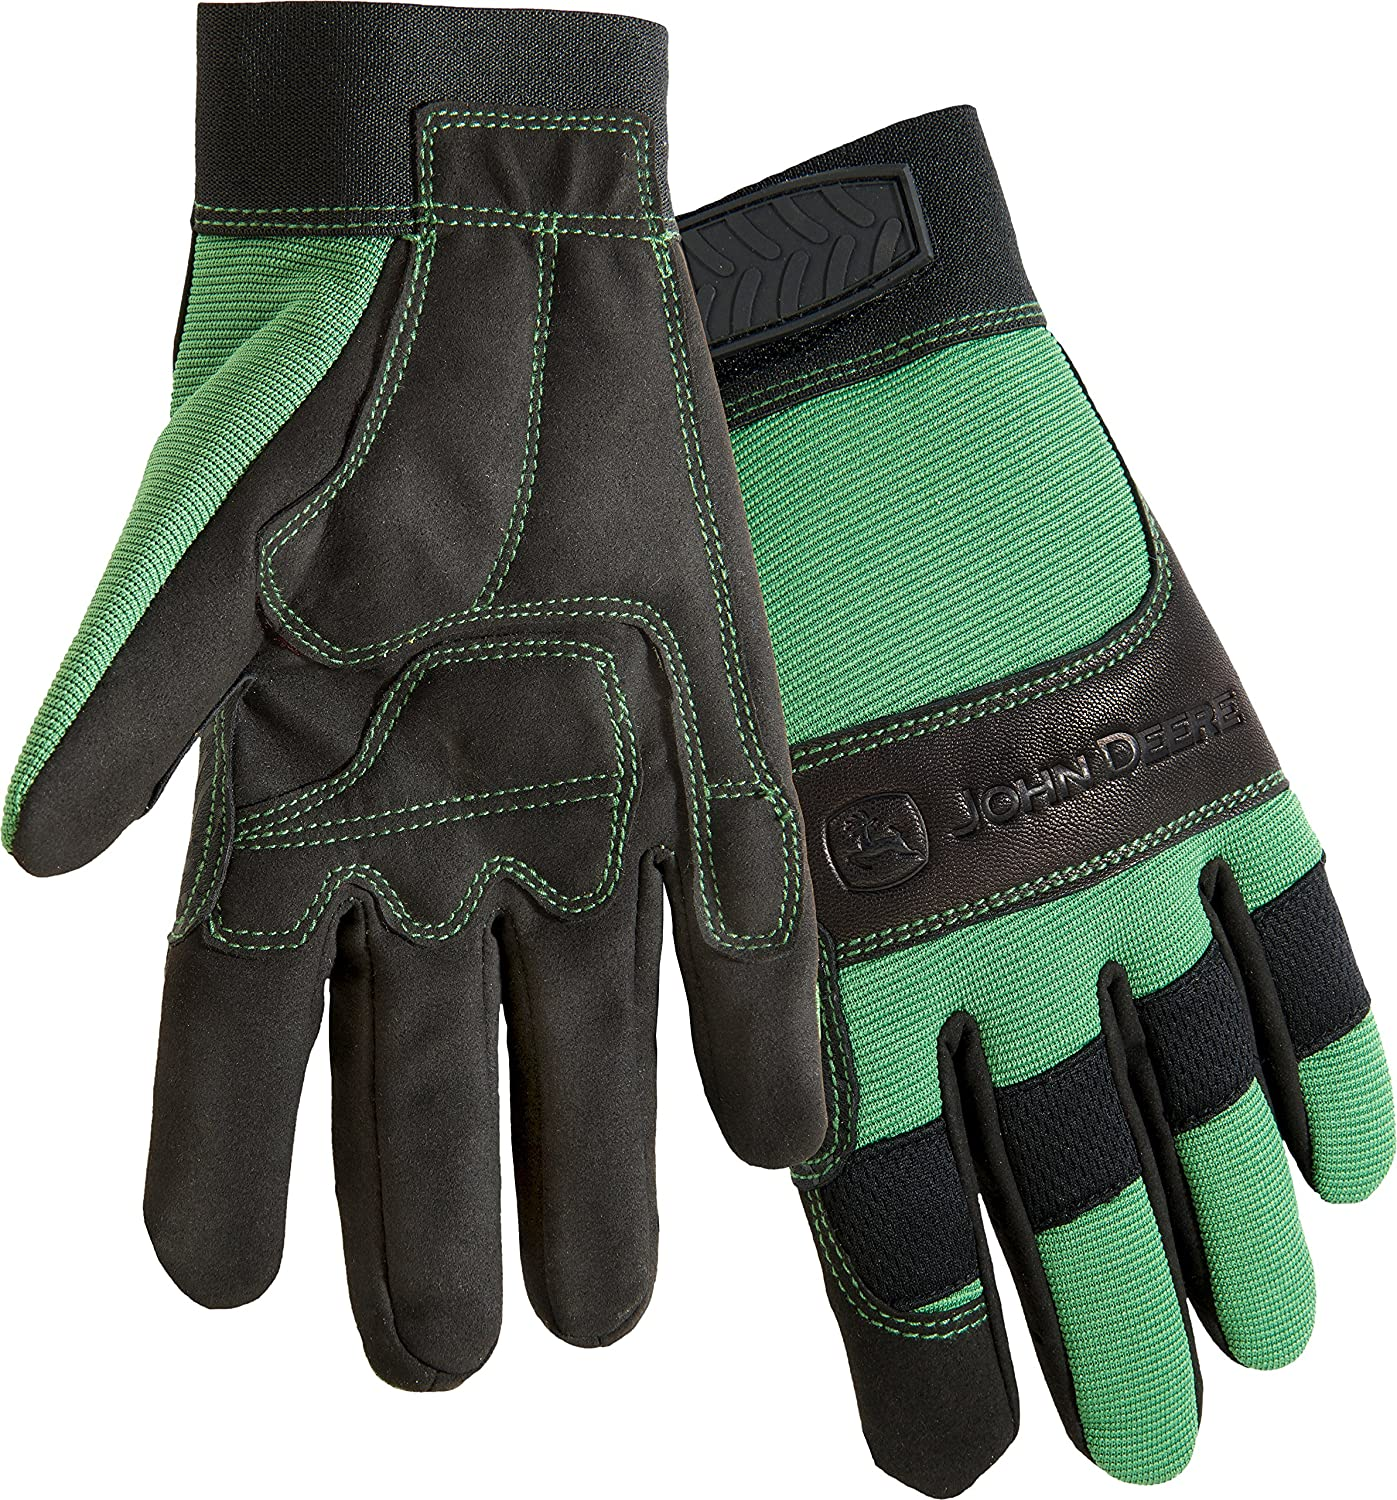 West Chester John Deere JD90010G Waterproof High Dexterity Utility Work Gloves with Thinsulate Lining Large 1 Pair